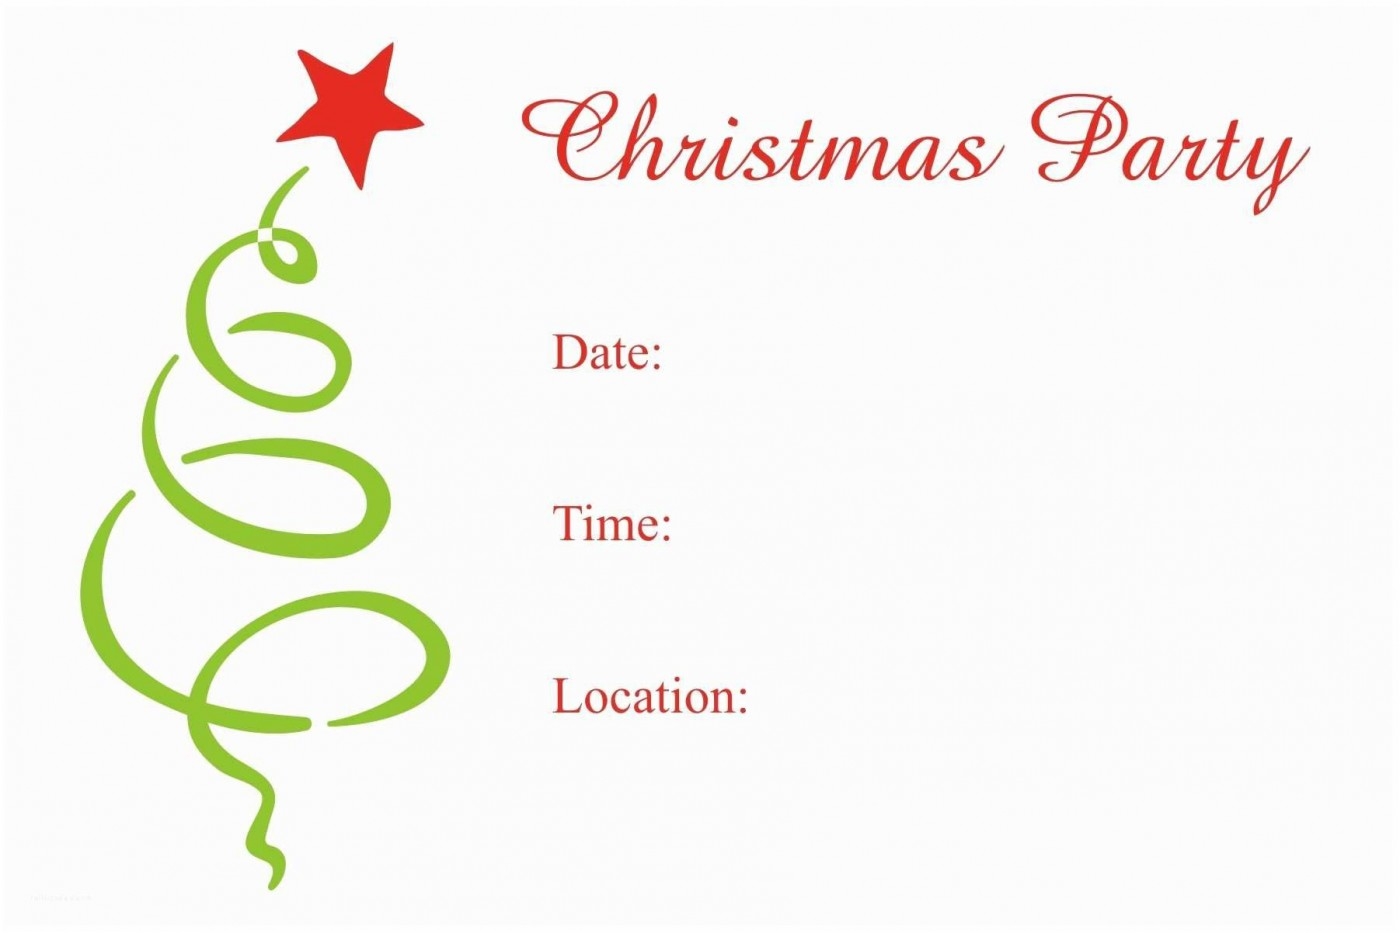 007 Archaicawful Christma Party Invitation Template Highest Clarity  Holiday Download Free Psd1400